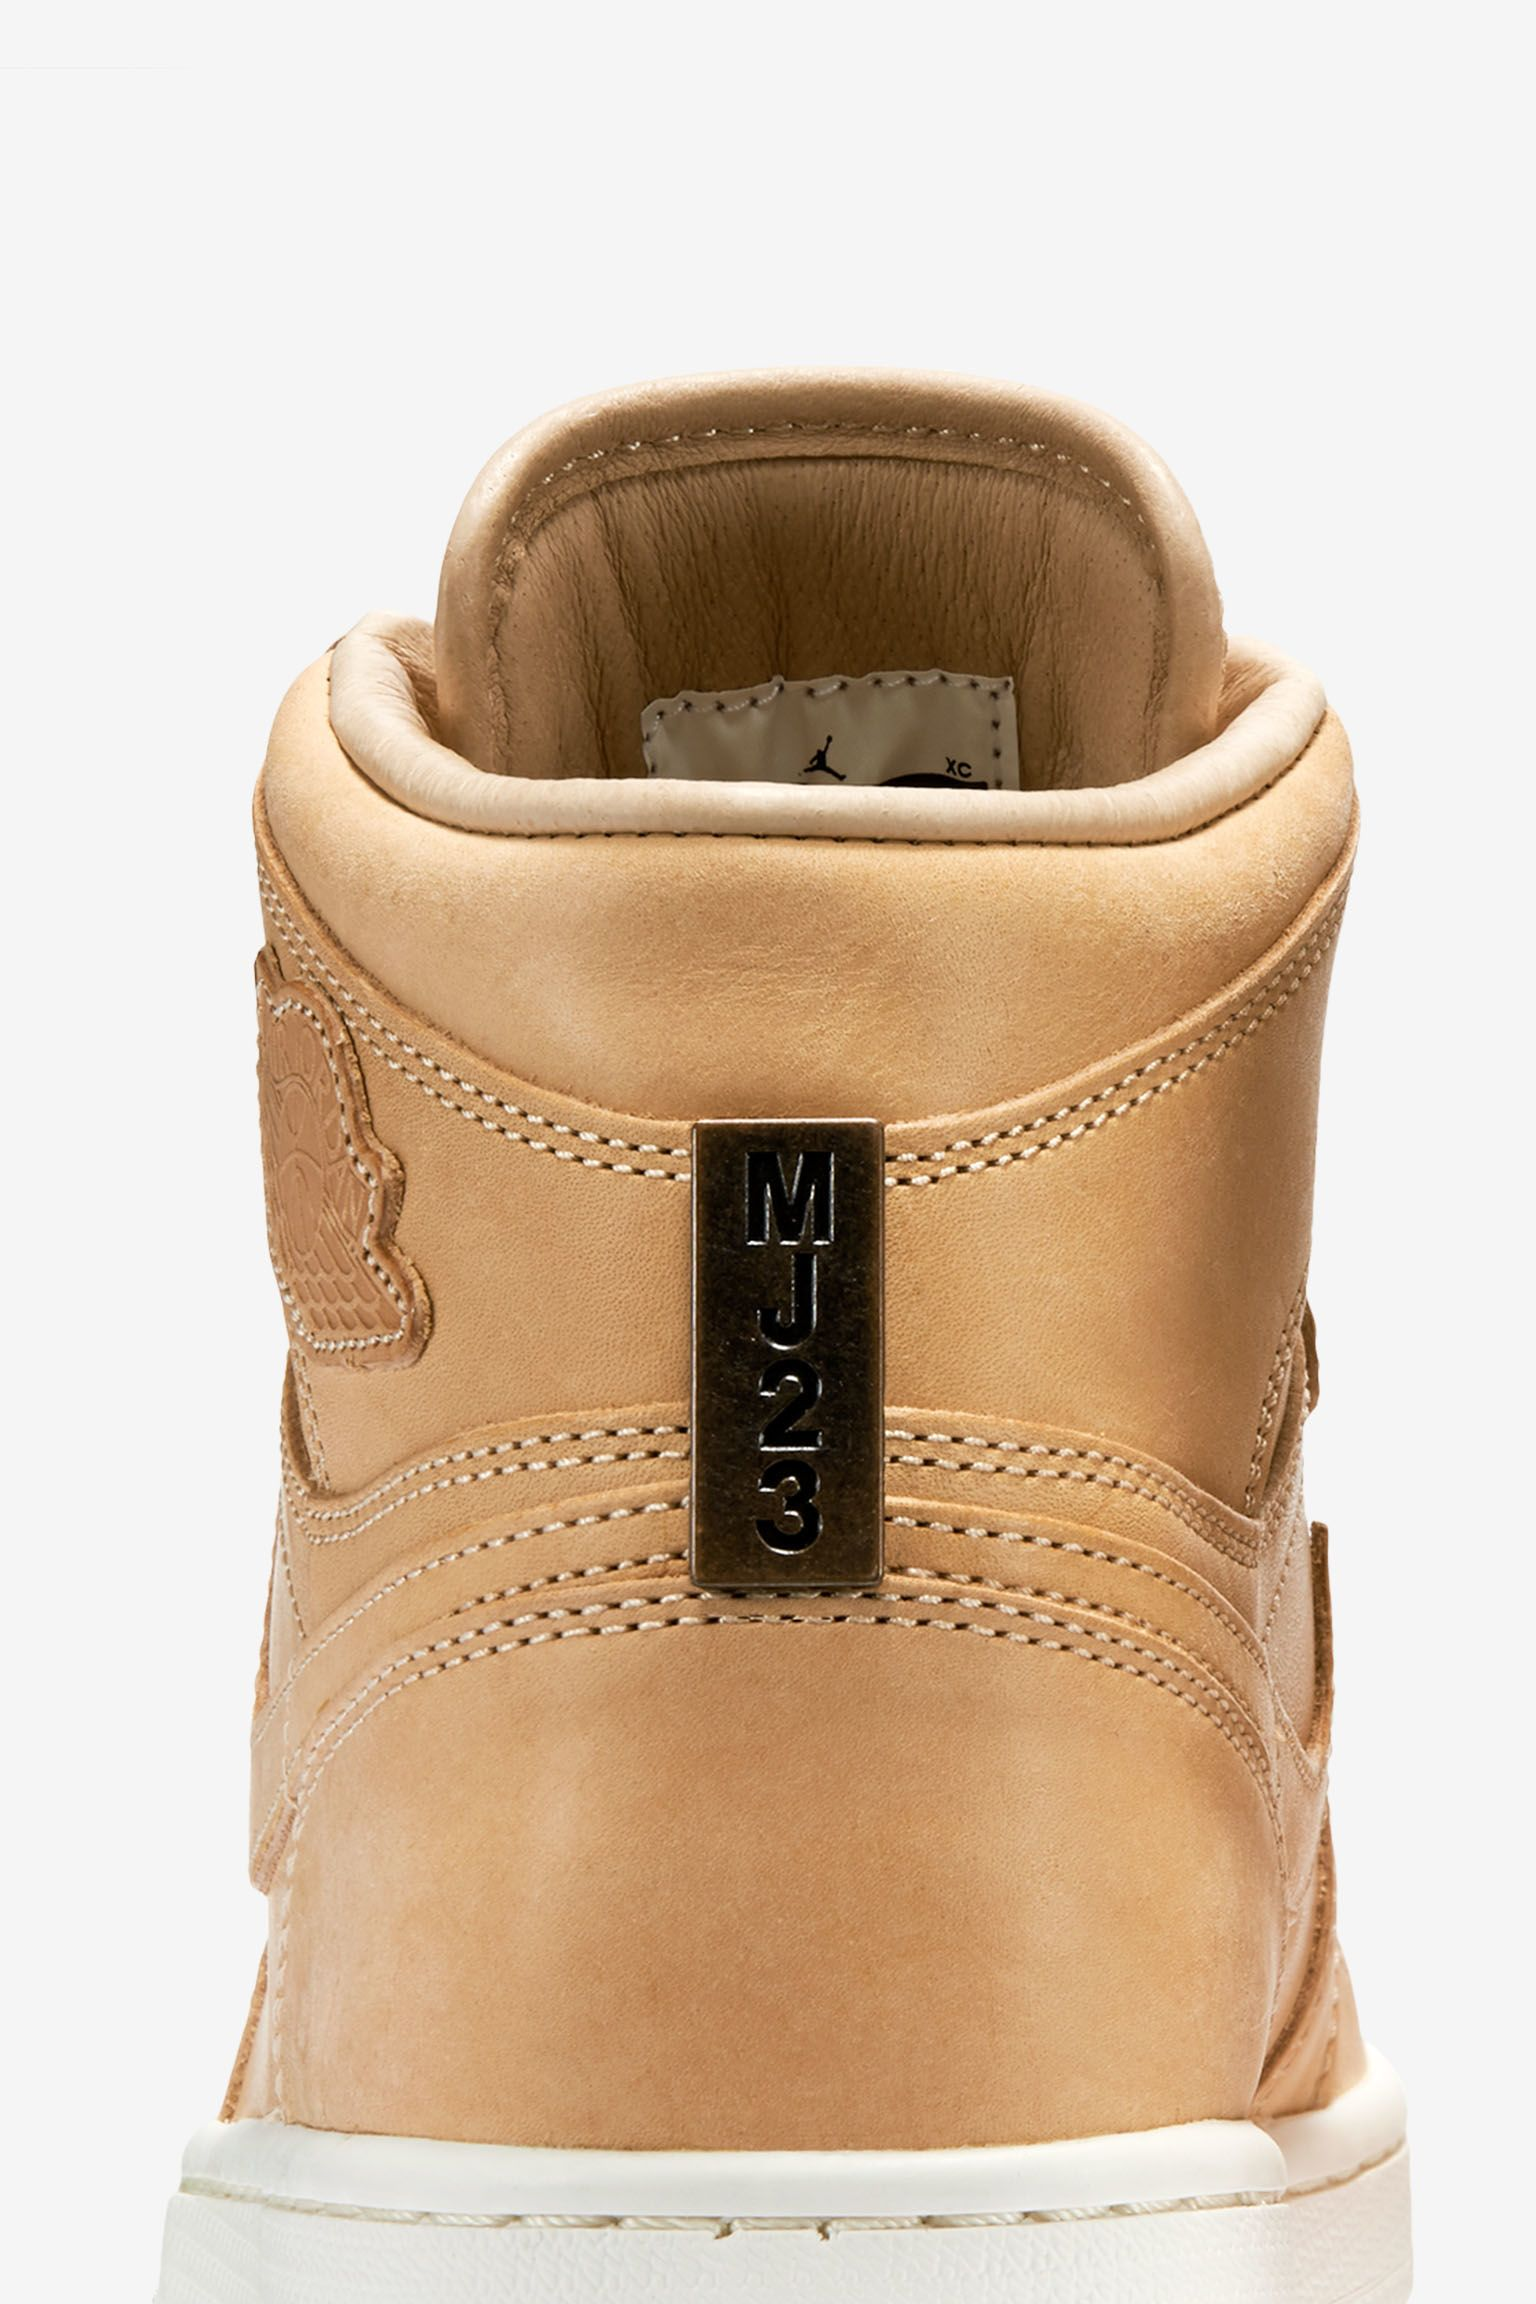 Air Jordan 1 Retro Pinnacle 'Vachetta Tan' Release Date